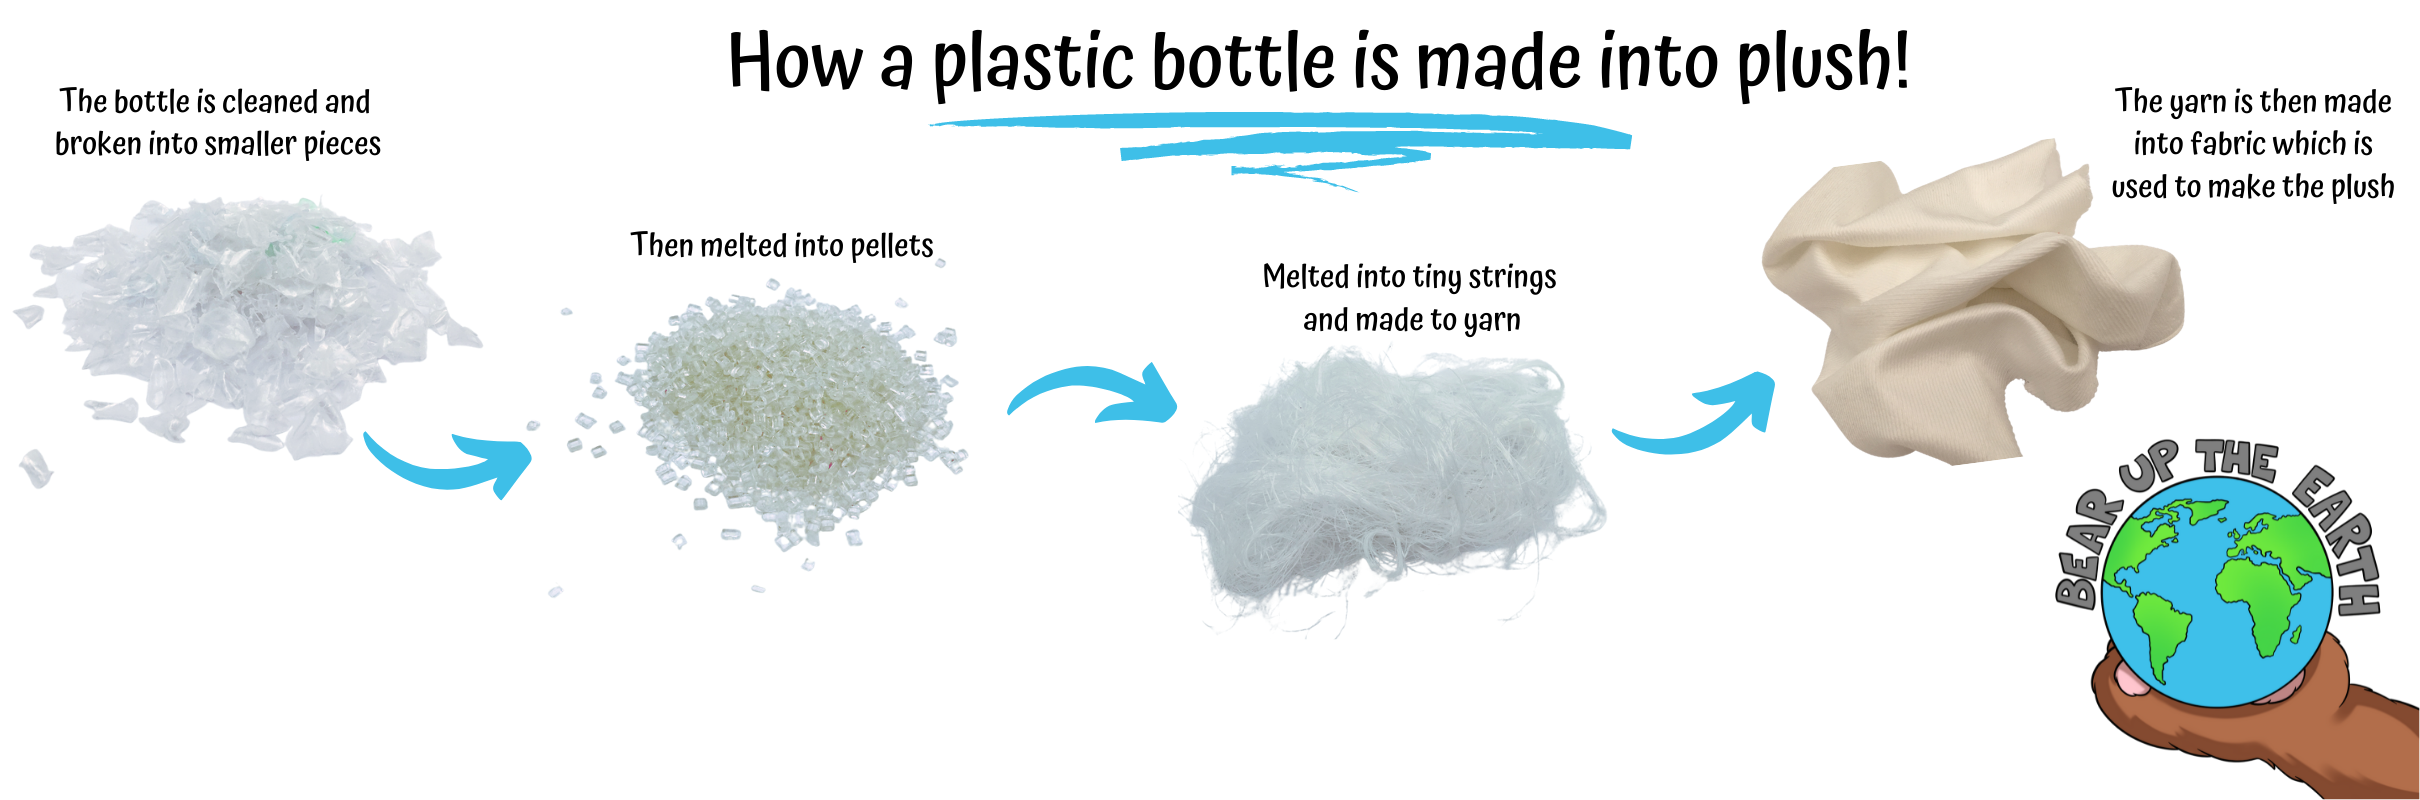 ECO - How plastic is made into fabric